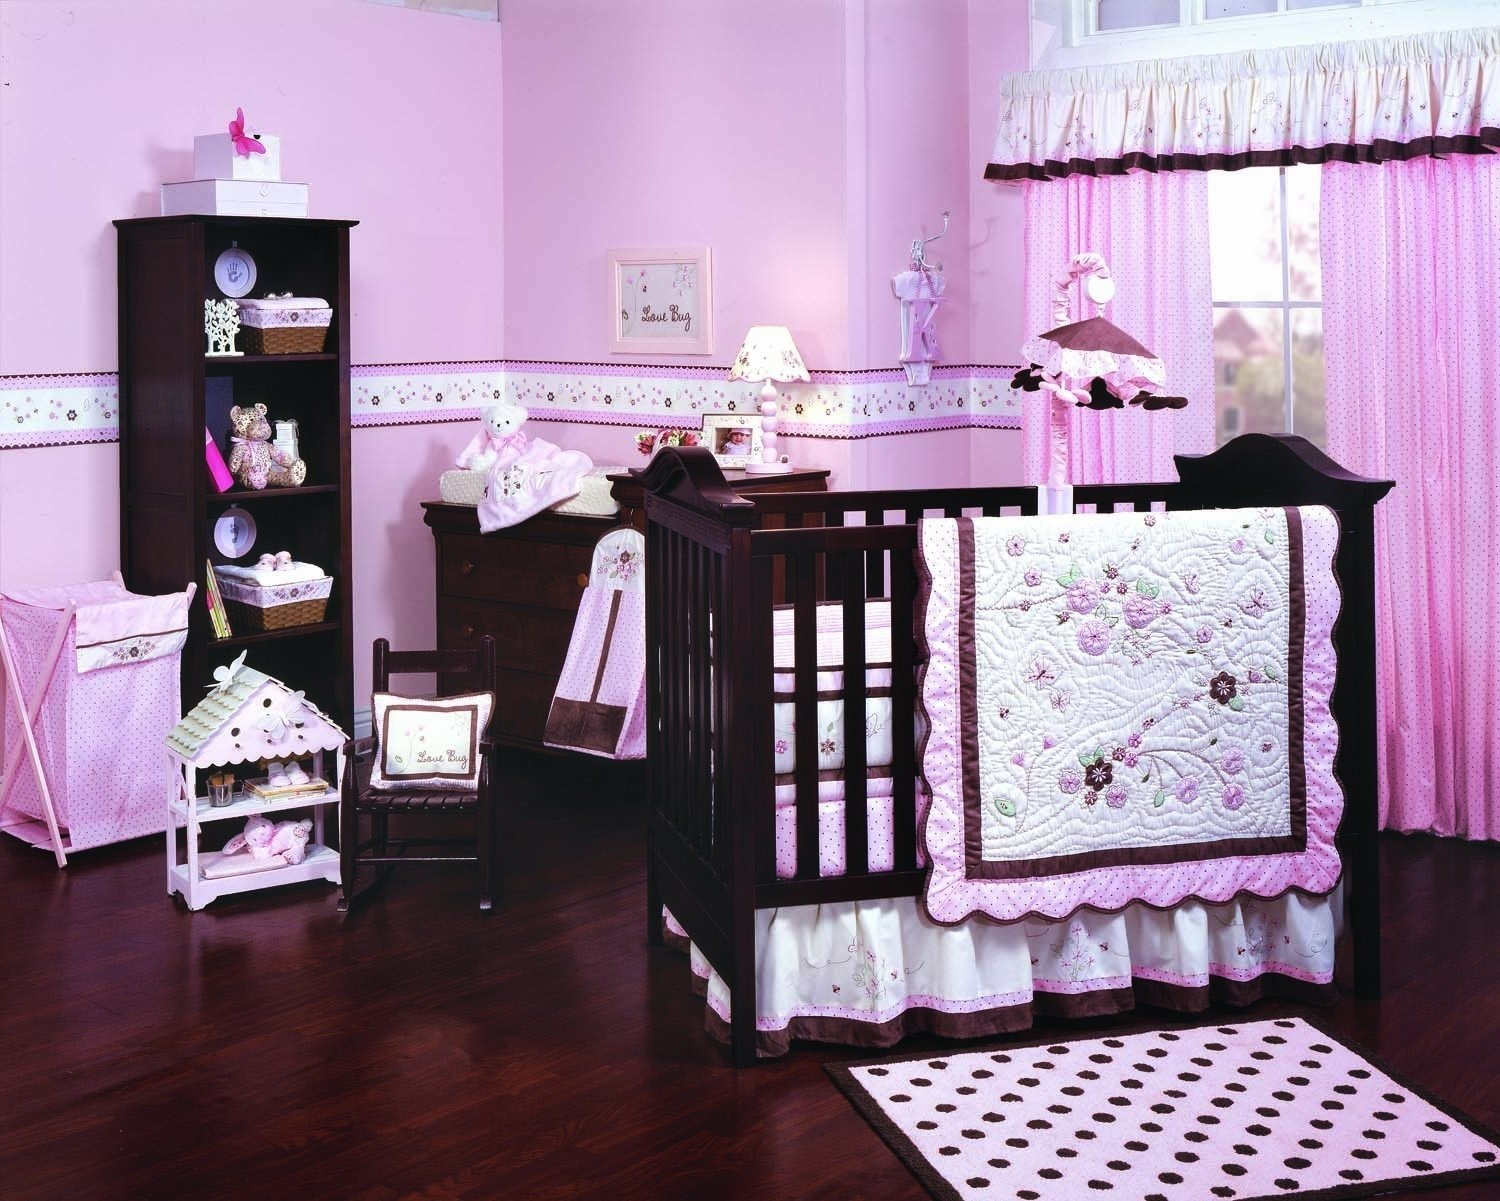 10 Lovely Pink And Brown Nursery Ideas pink and brown nursery decor palmyralibrary 2020